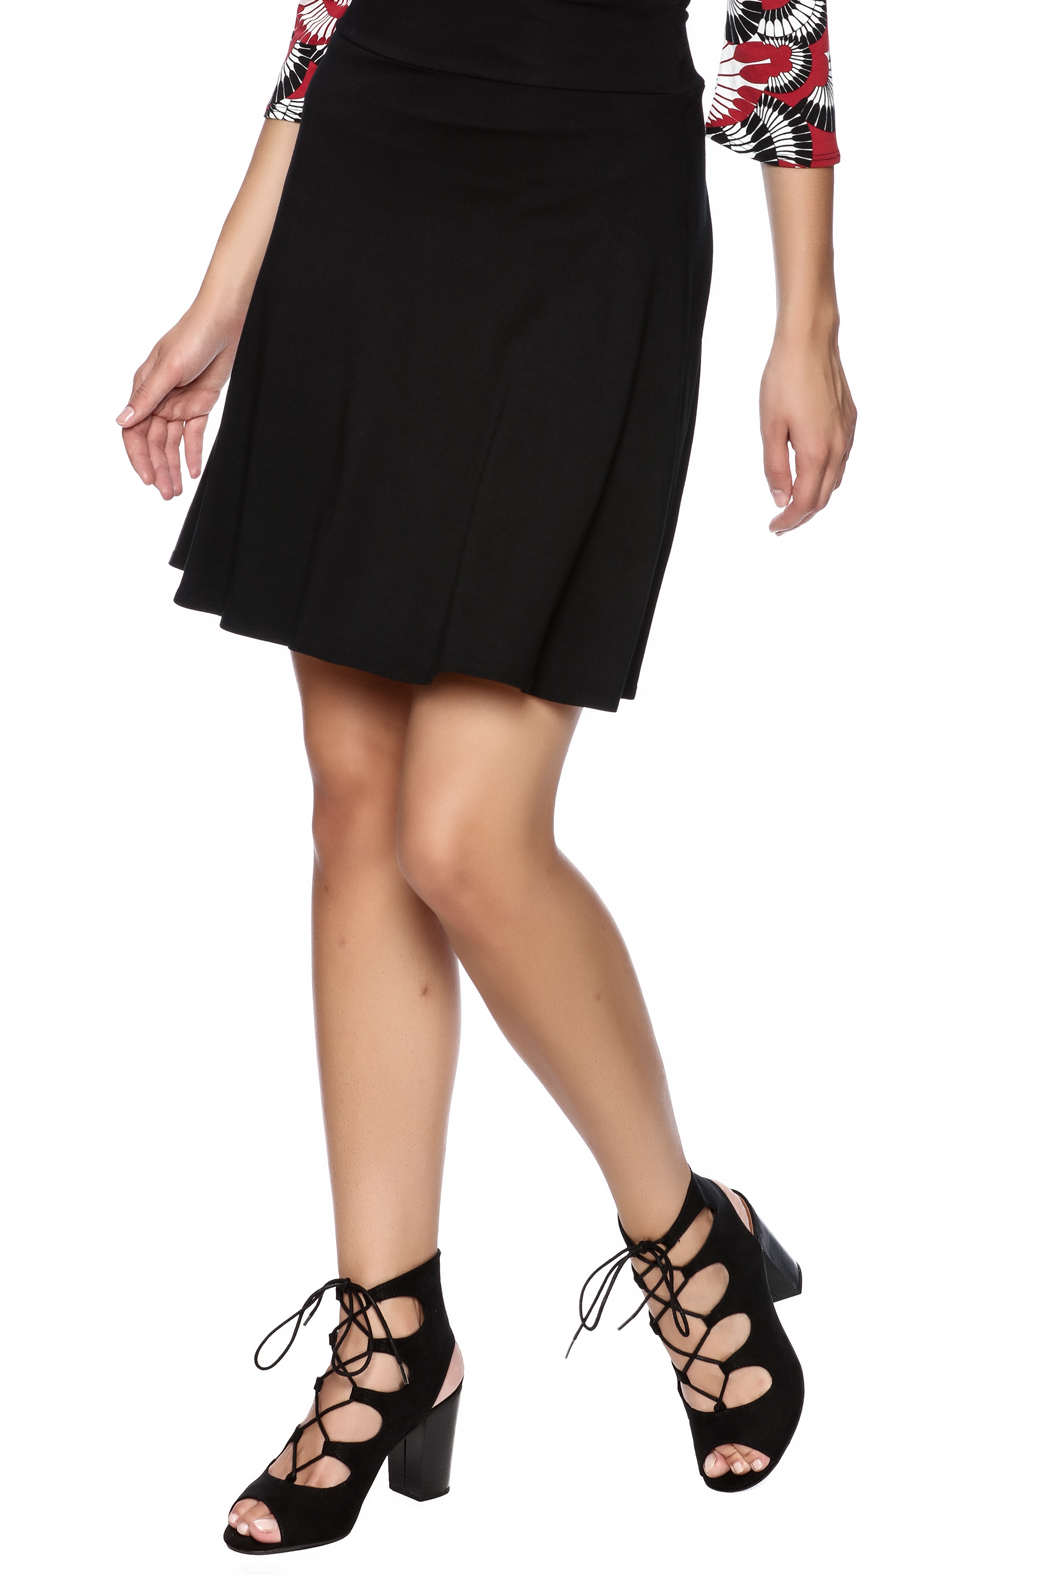 salaam Black Short Flippy Skirt - Main Image